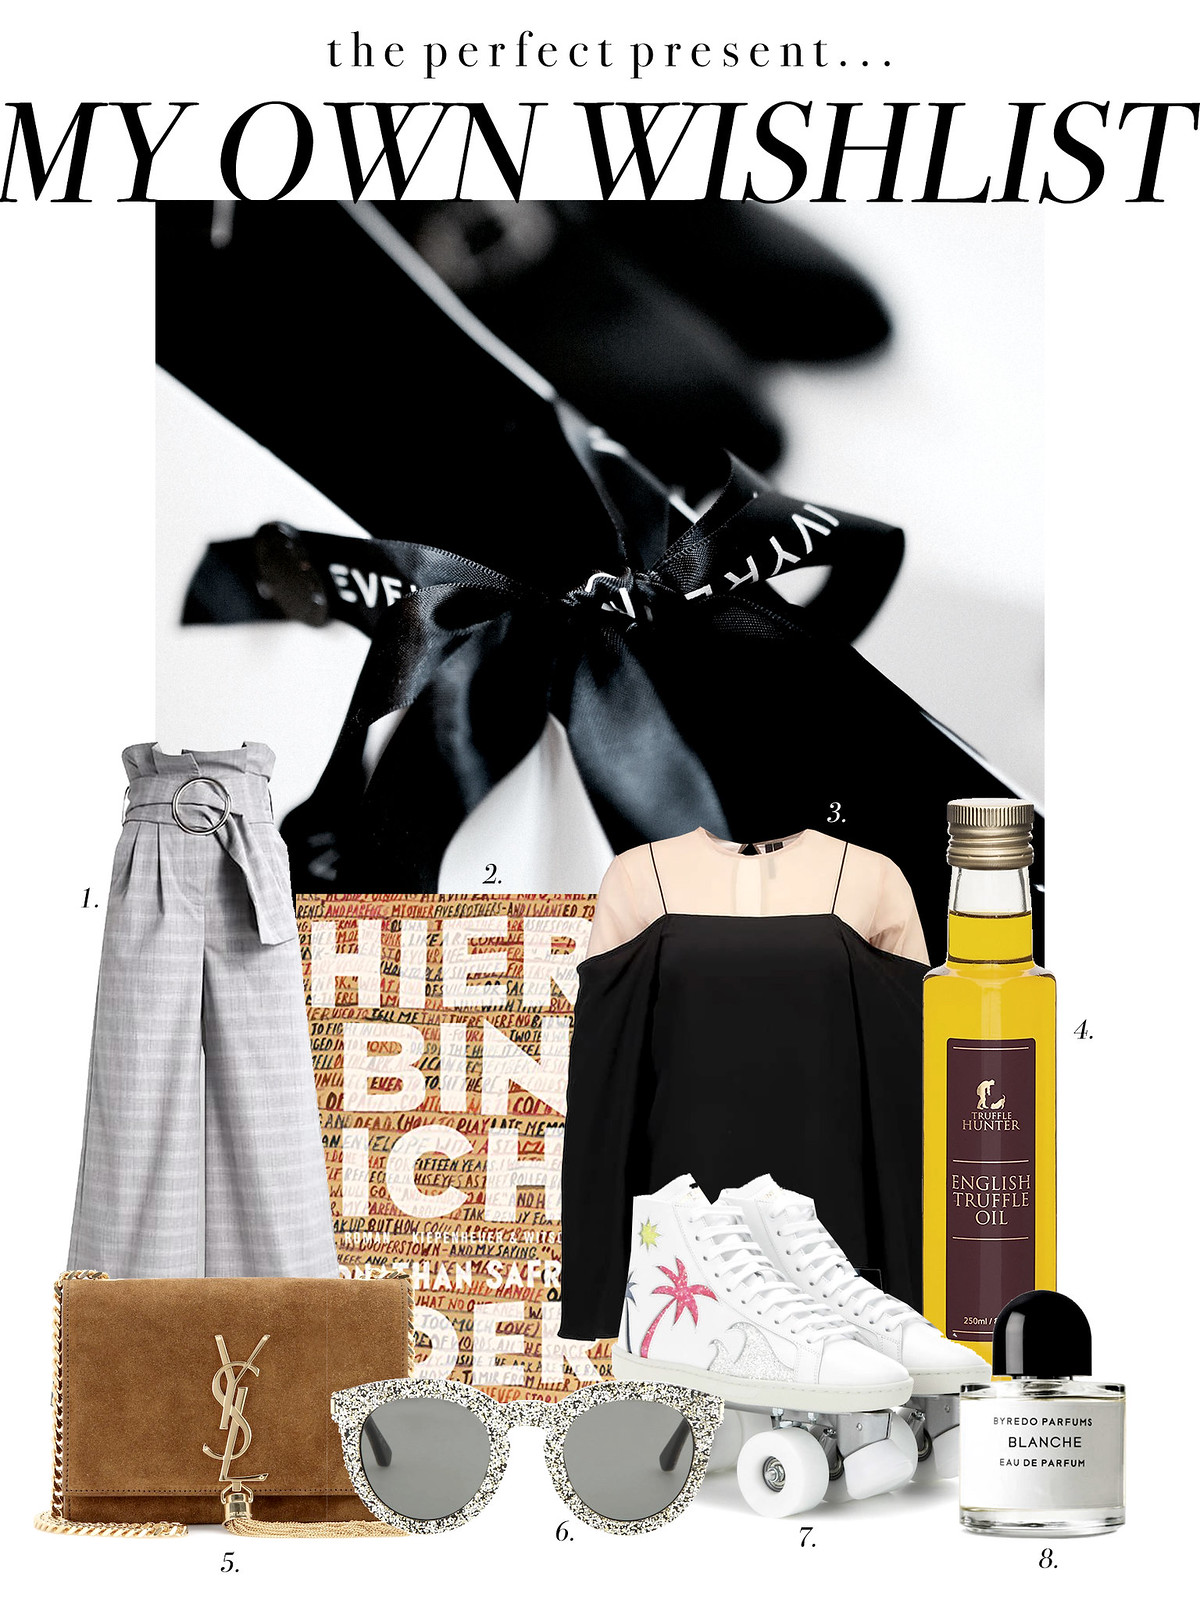 cuted christmas xmas wish list gift gifts geschenke wunschzettel wünsche schenken weihnachten lux luxury gifting ideas personal friends family cats & dogs fashionblog ricarda schernus modeblogger düsseldorf berlin beautyblogger 2